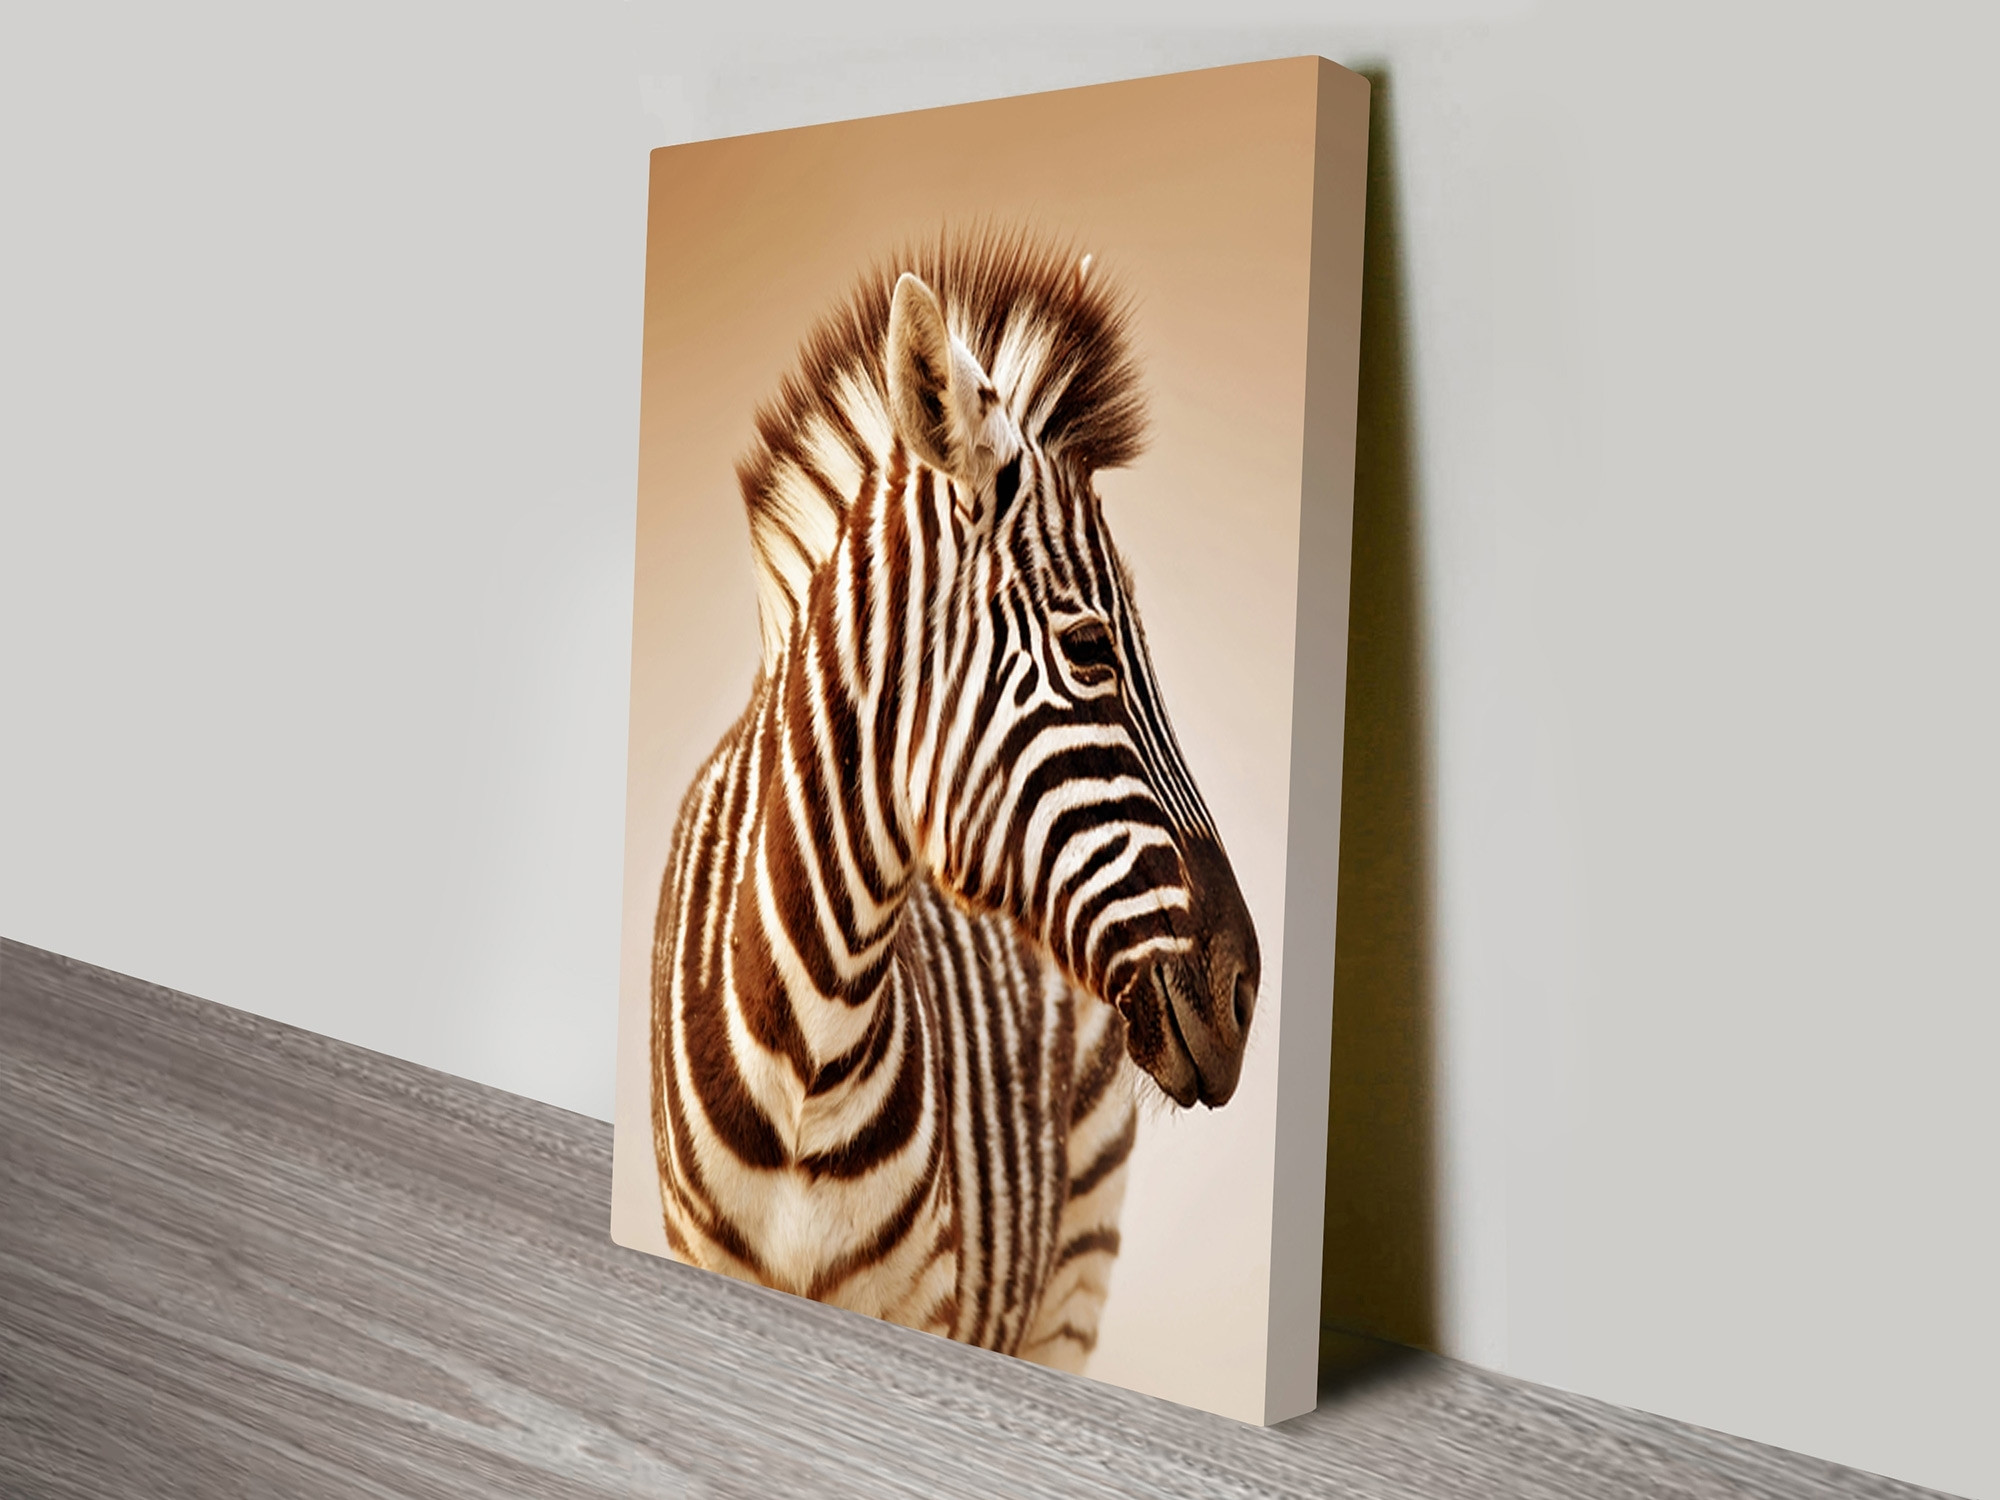 Zebra Sepia Canvas Wall Art Prints Wollongong Intended For Most Recent Zebra Canvas Wall Art (View 19 of 20)